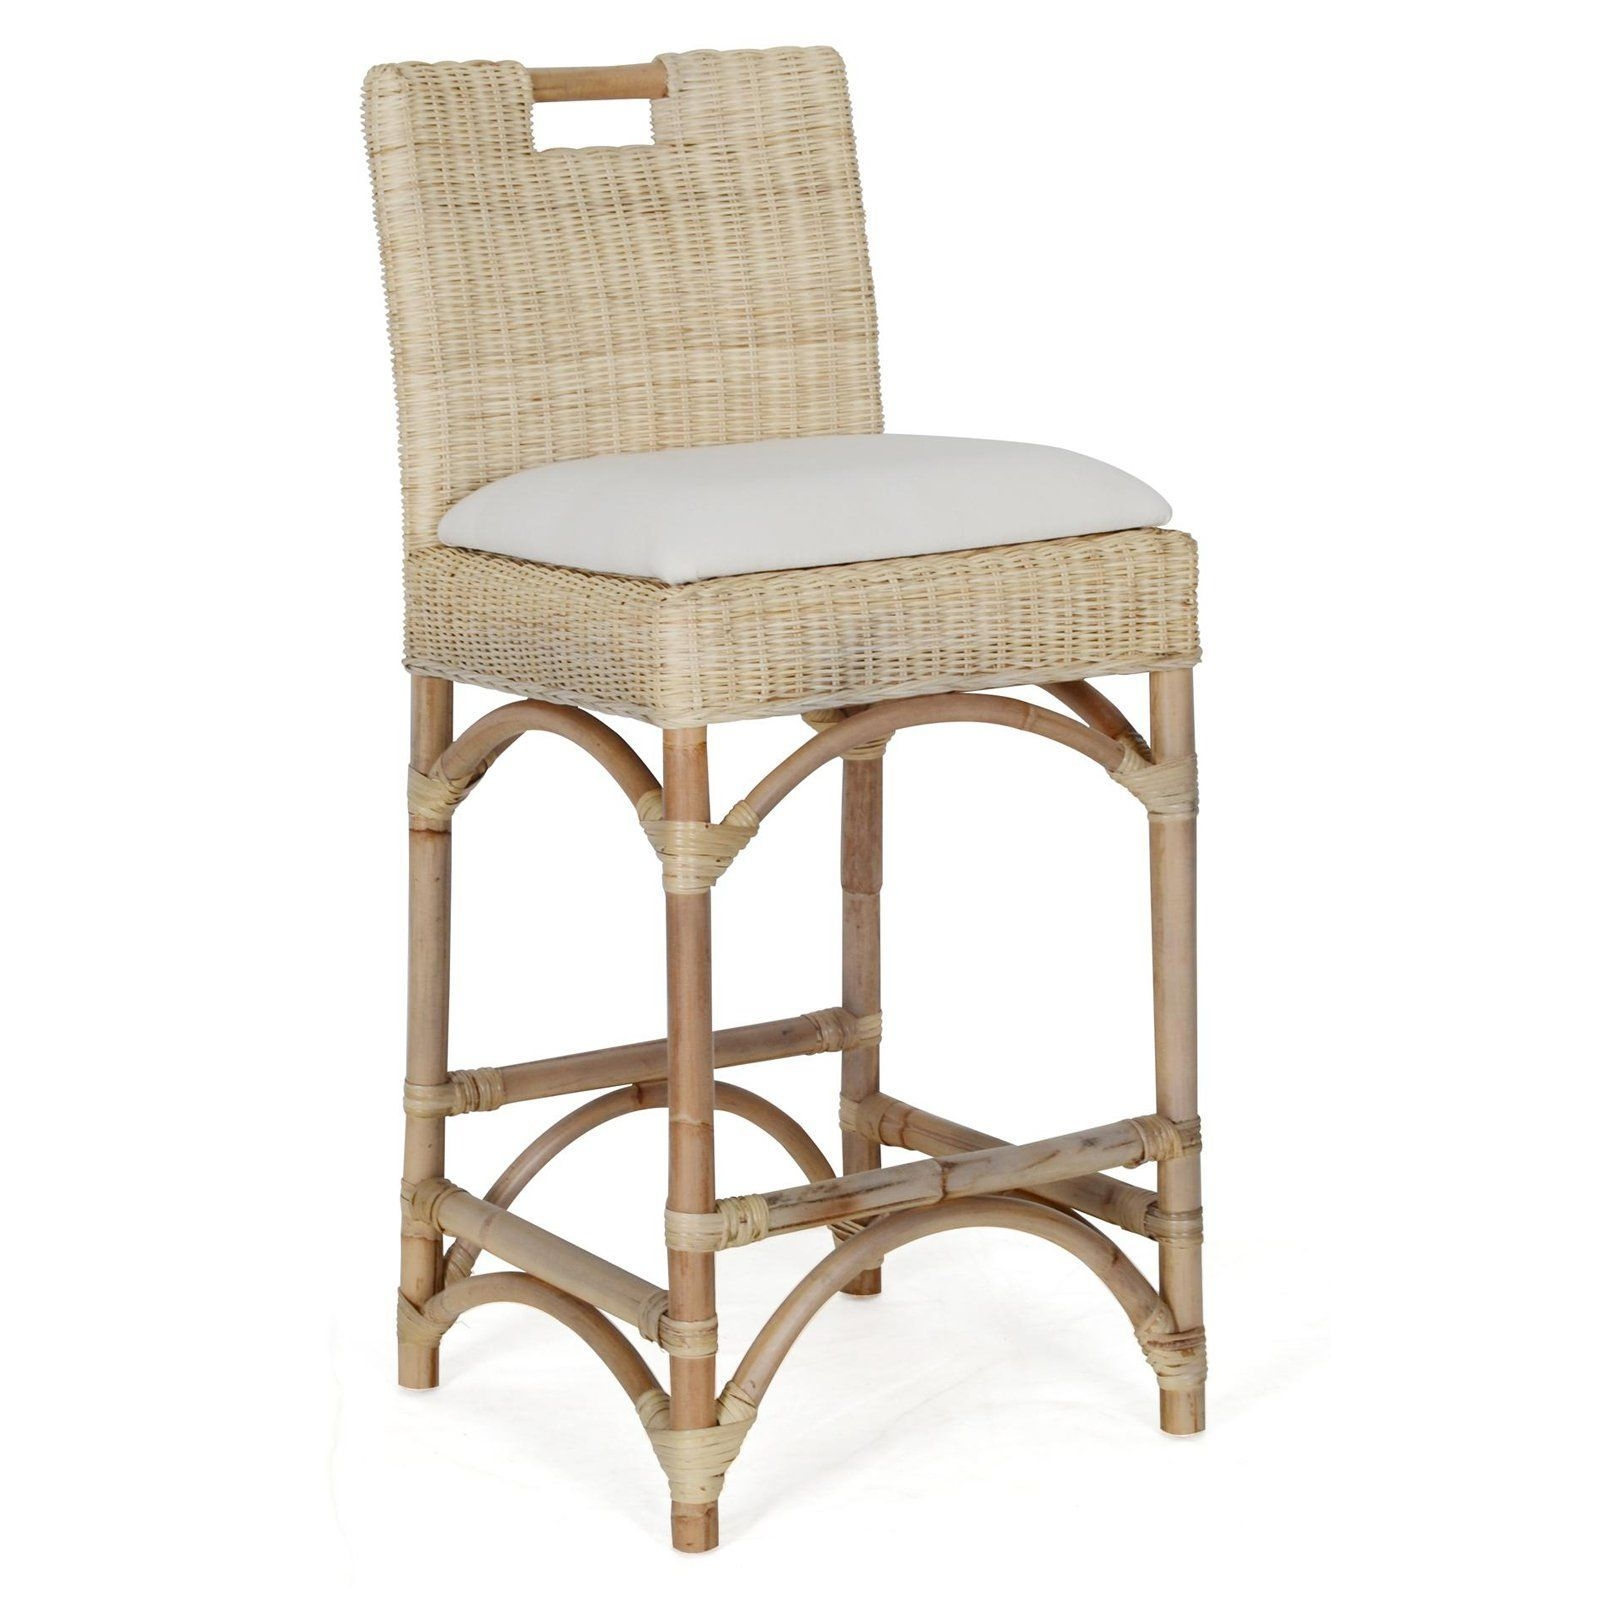 Natural habitat farlowe rattan counter stool